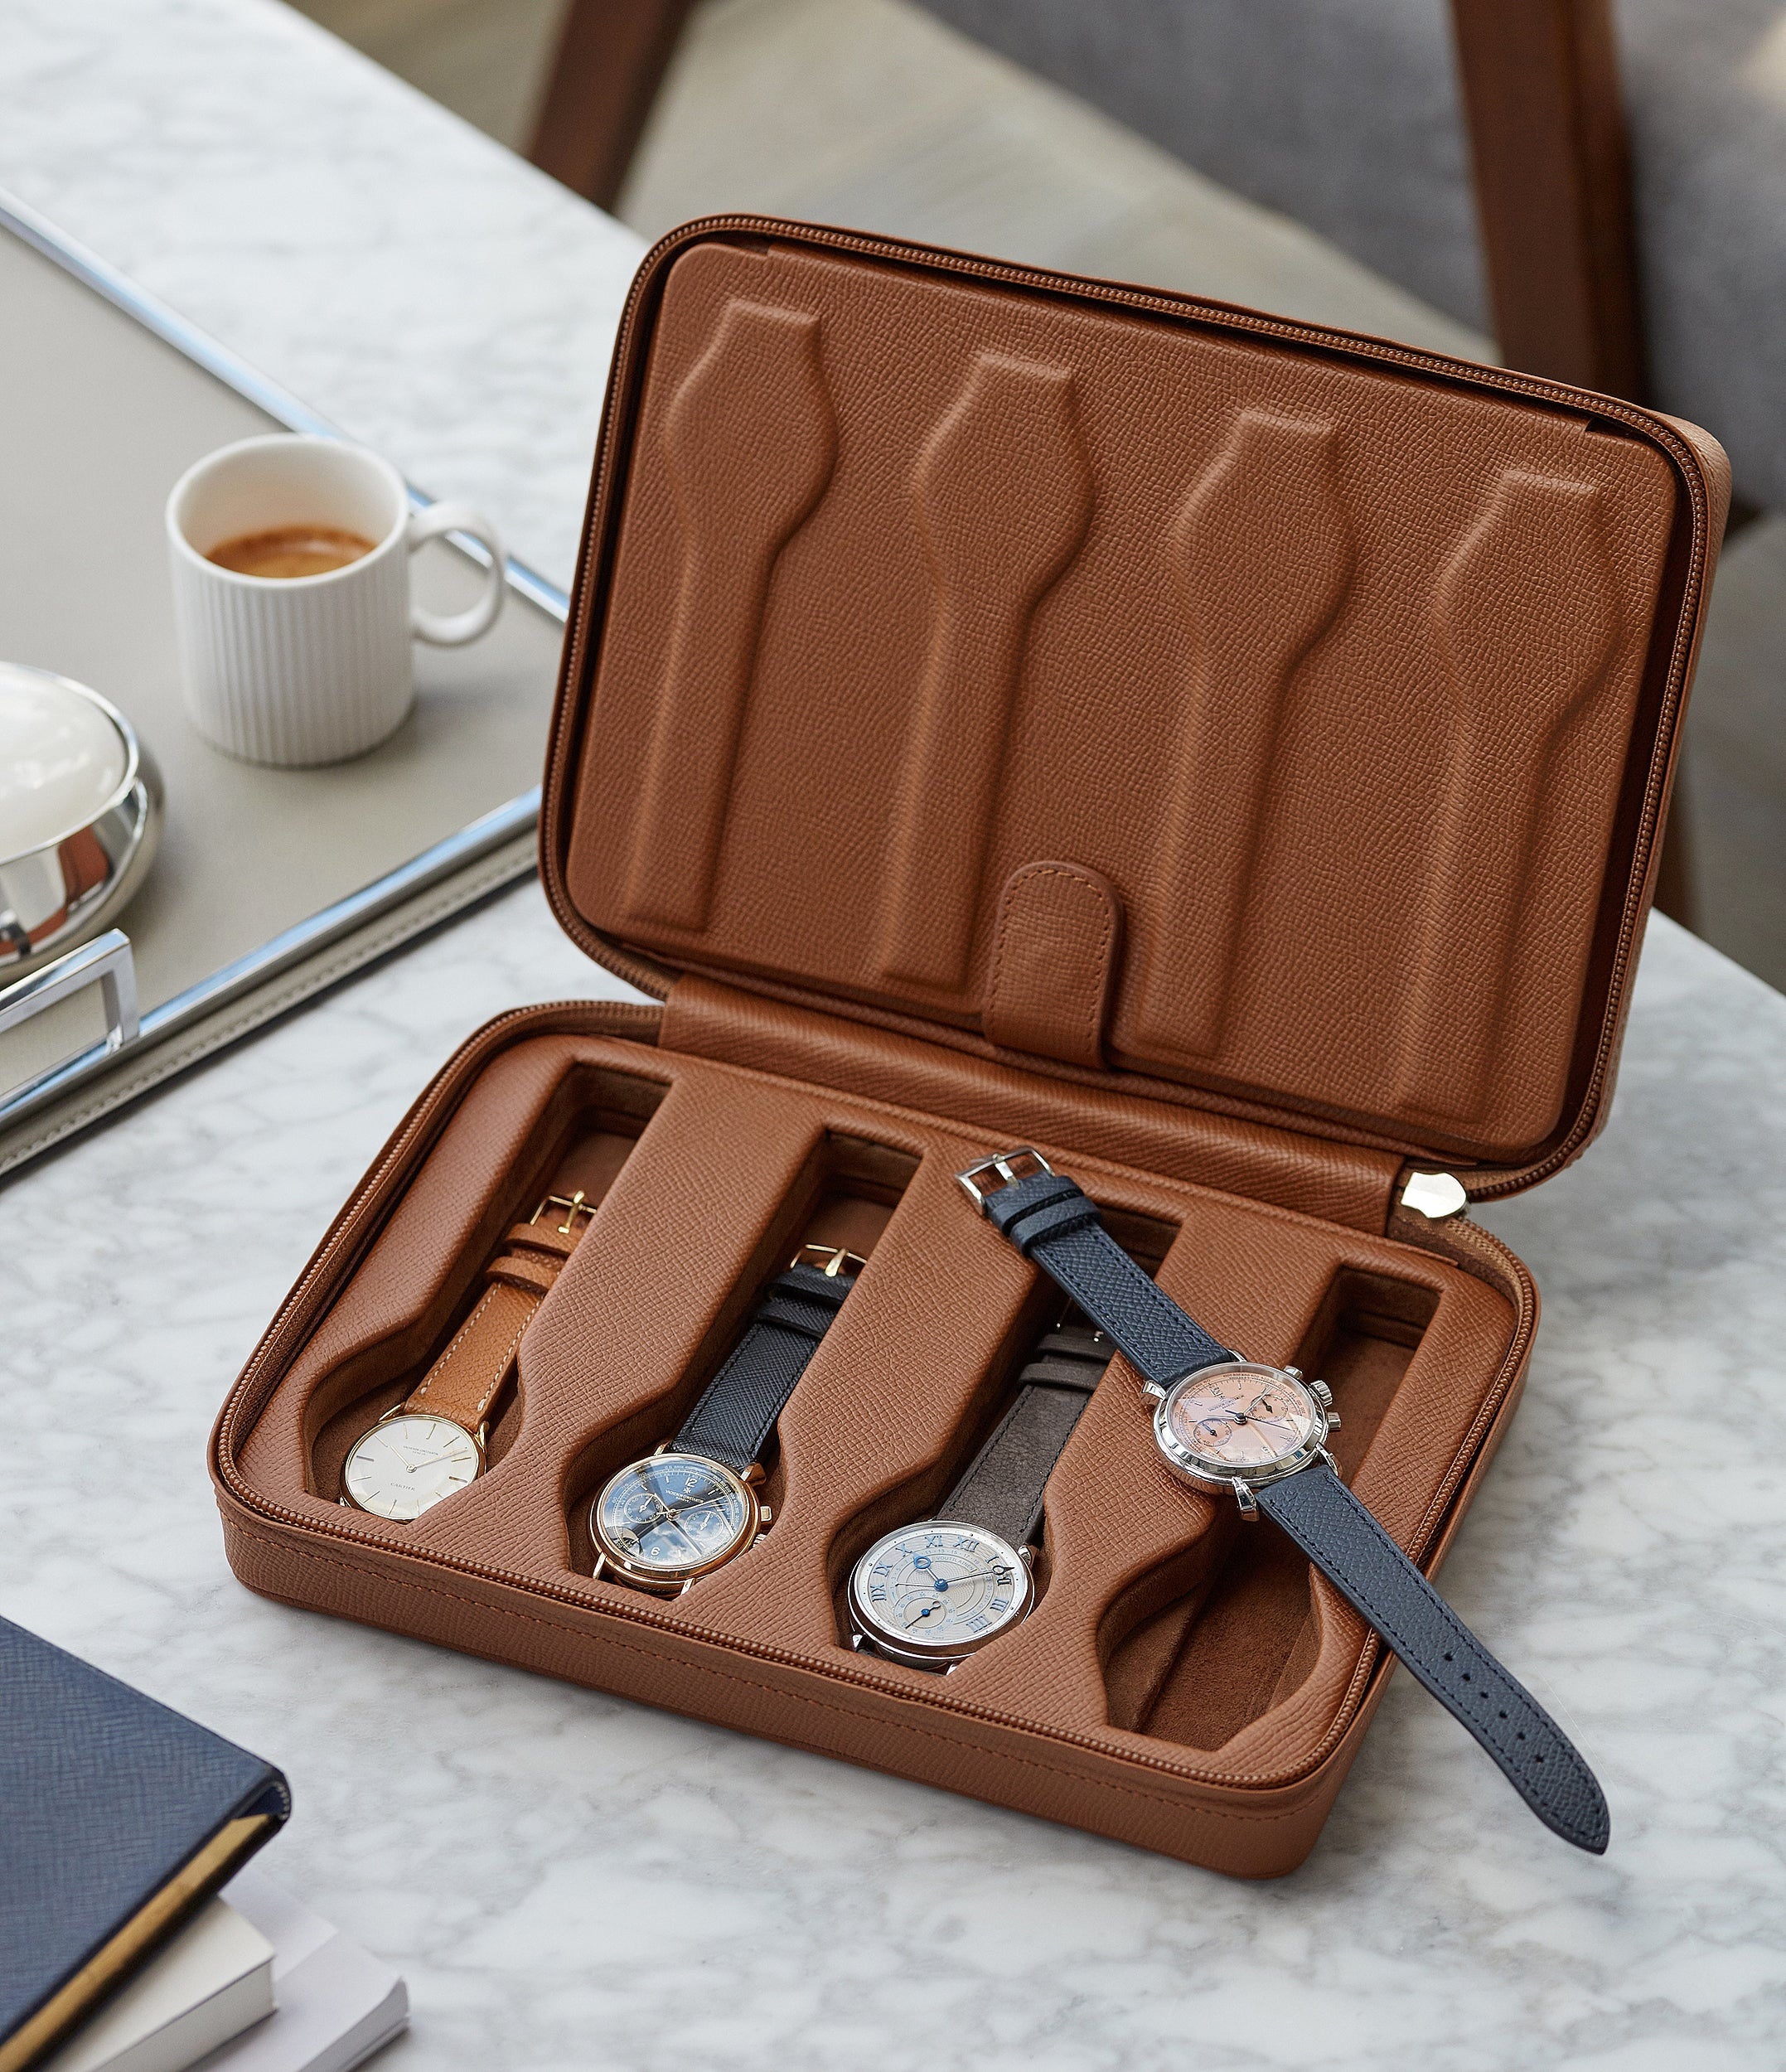 tan calfskin watch case holder accessories eight watches order online A Collected Man London